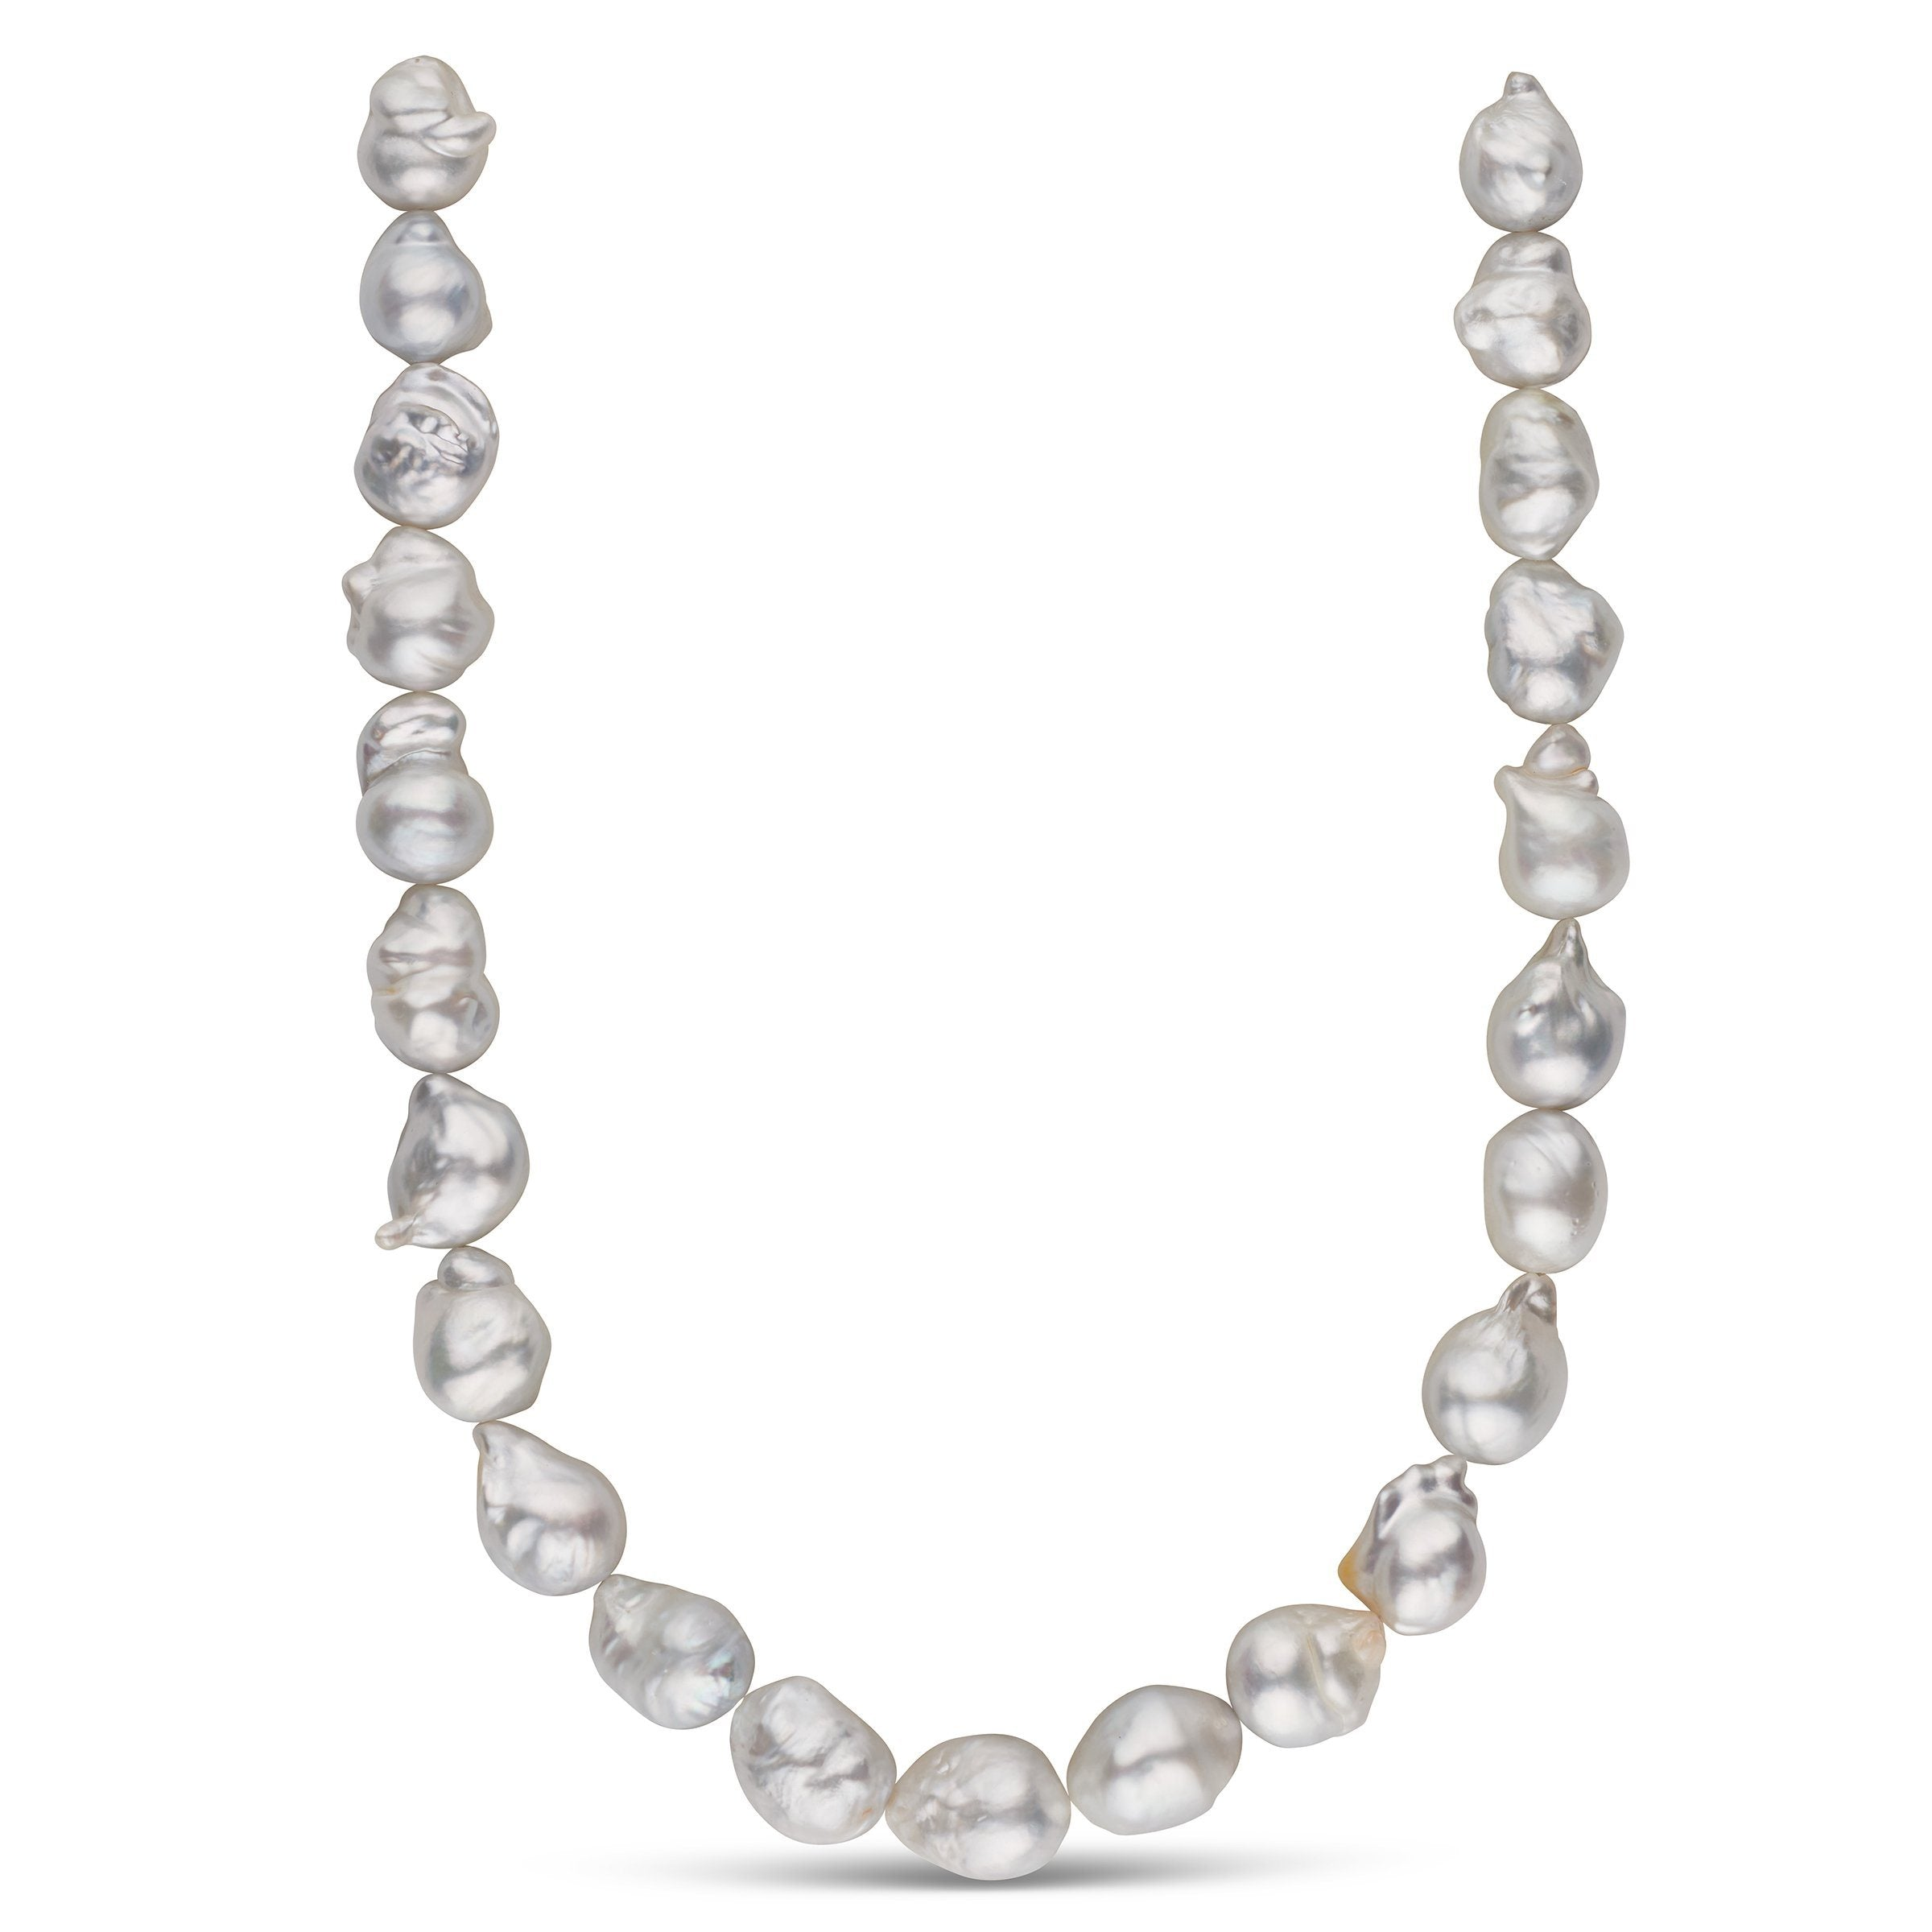 14.2-15.2 mm AA+/AAA White South Sea Baroque Pearl Necklace